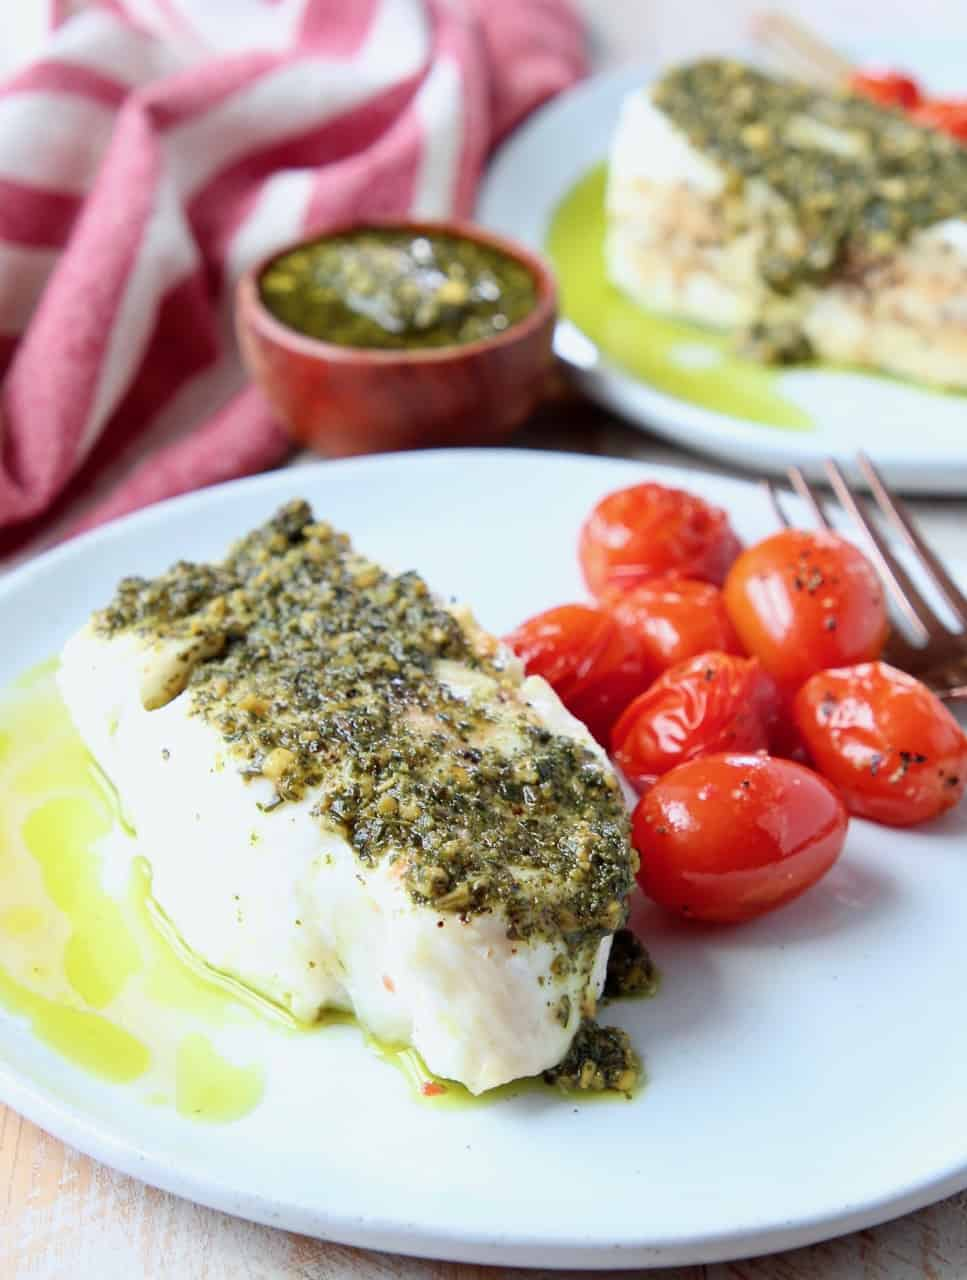 Sea bass topped with pesto on plate with cherry tomatoes